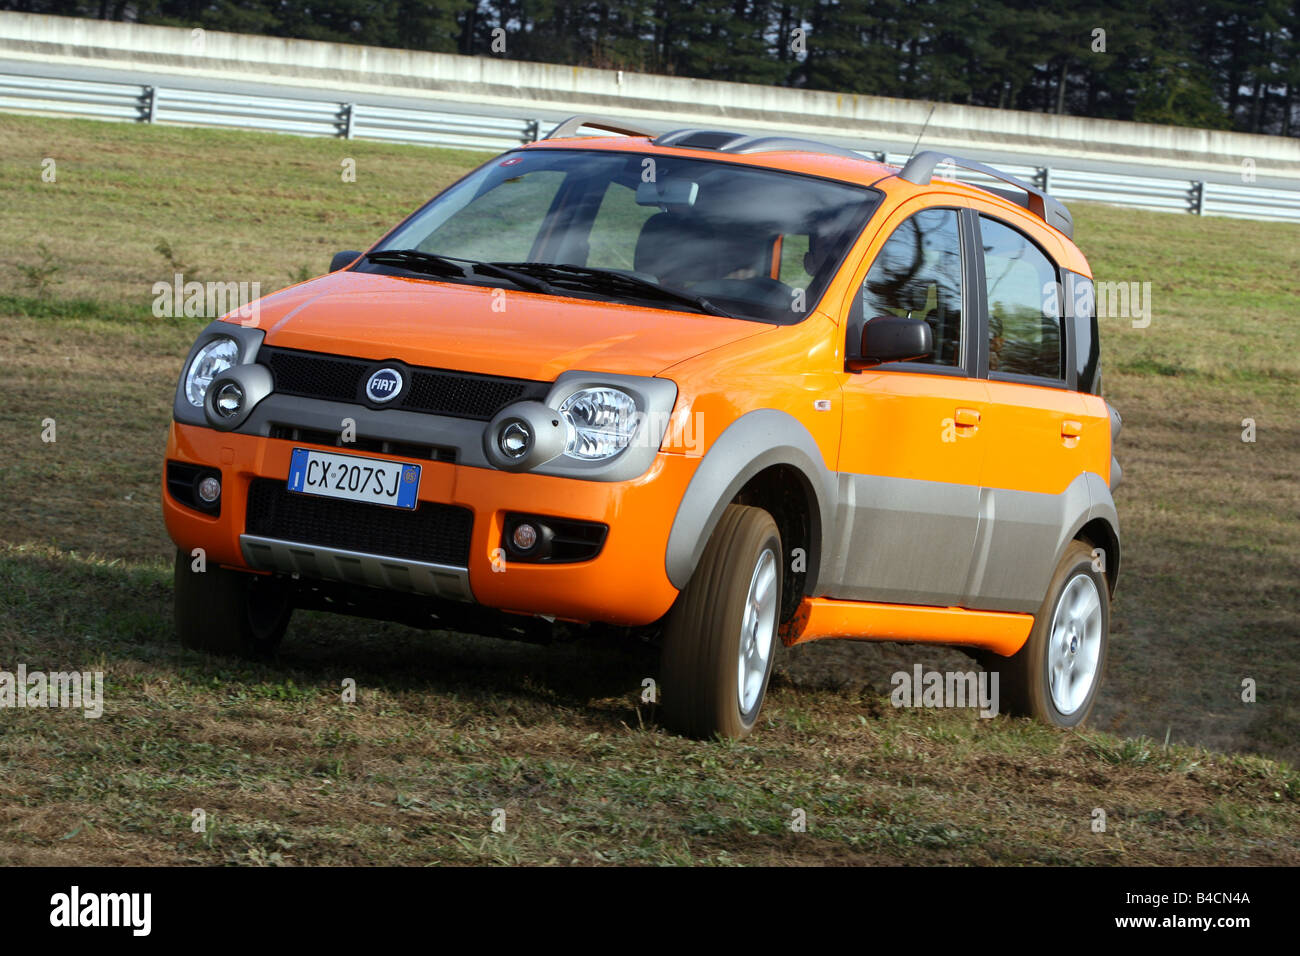 fiat panda 1 3 multijet 16v 4x4 model year 2006 orange driving stock photo royalty free. Black Bedroom Furniture Sets. Home Design Ideas